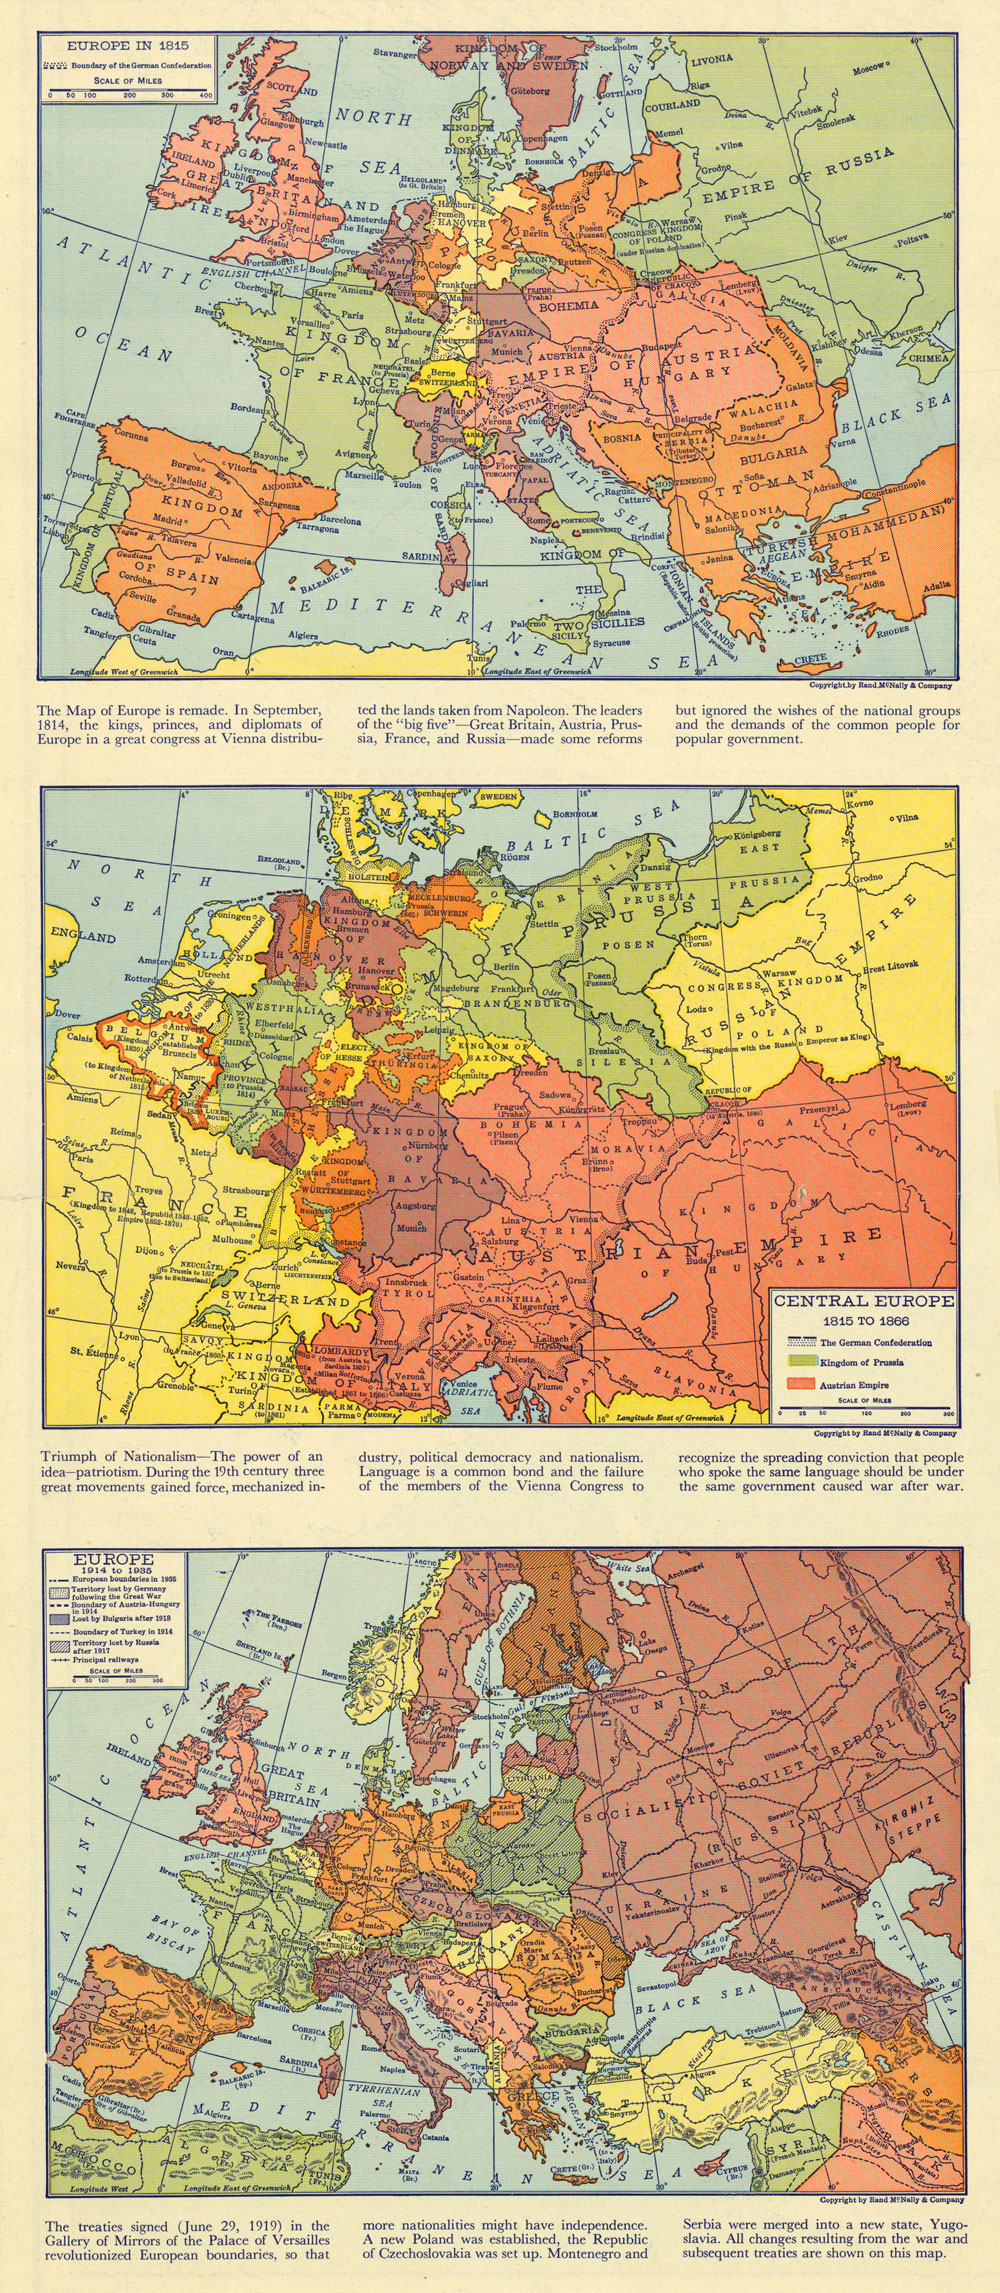 Maps of Central Europe, 1815-1935 · Stitching History from the Holocaust